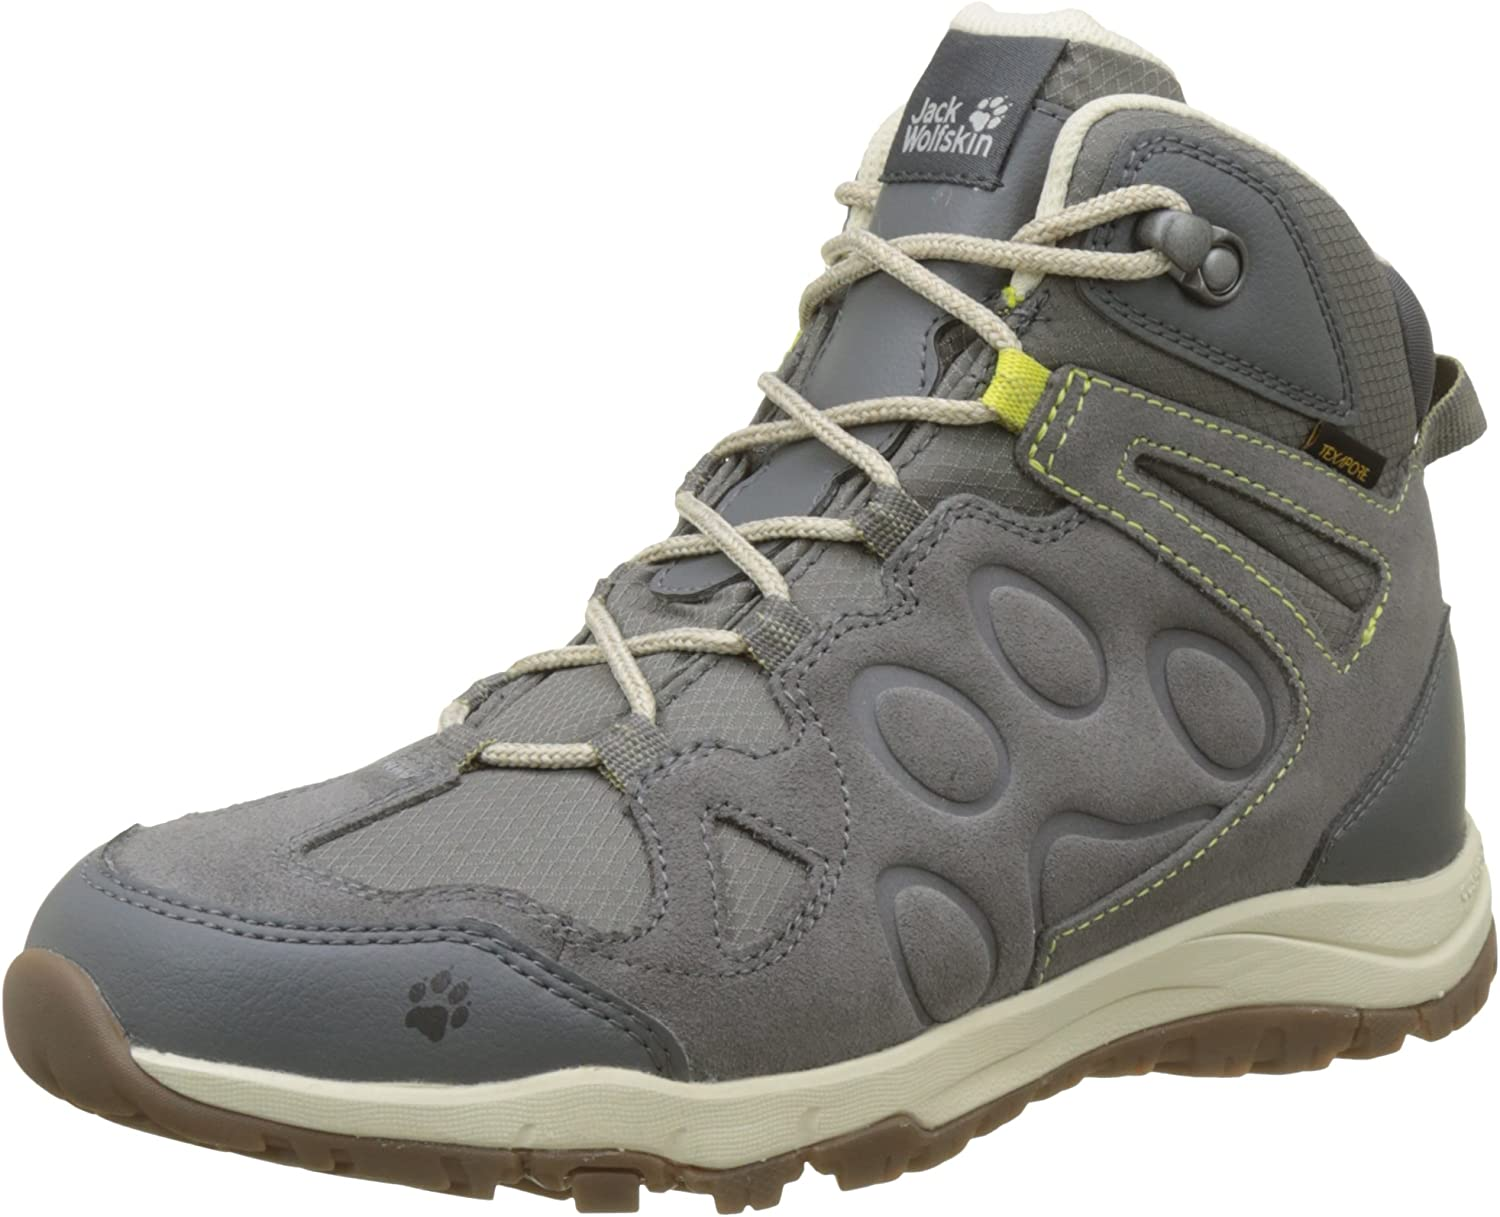 Jack Wolfskin Womens Rocksand Texapore Mid W Hiking shoes